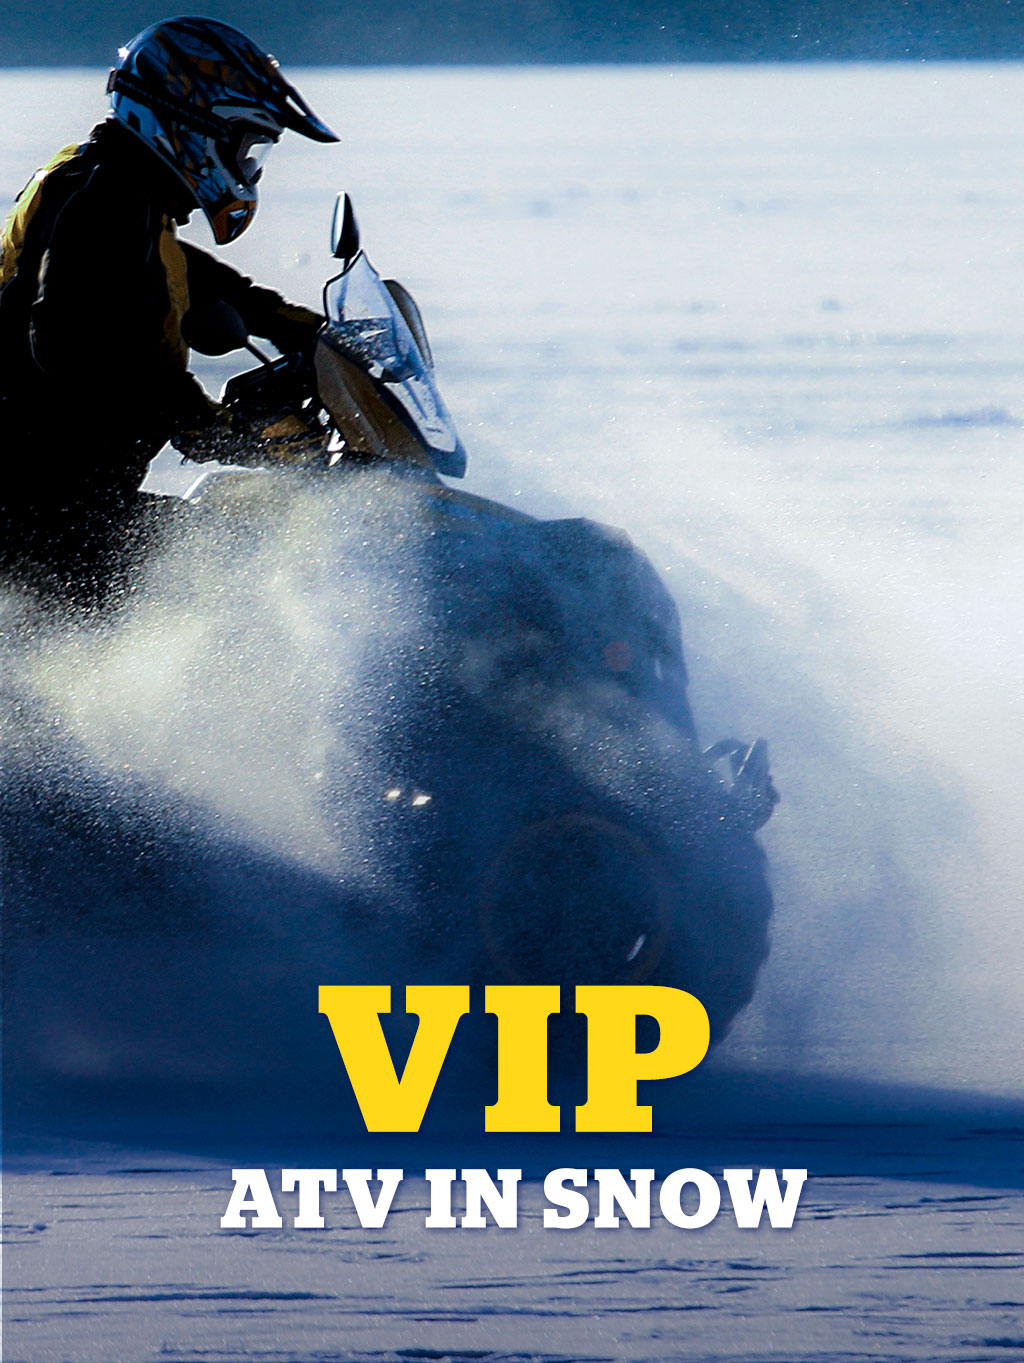 ATV_in_snow_vip_staende